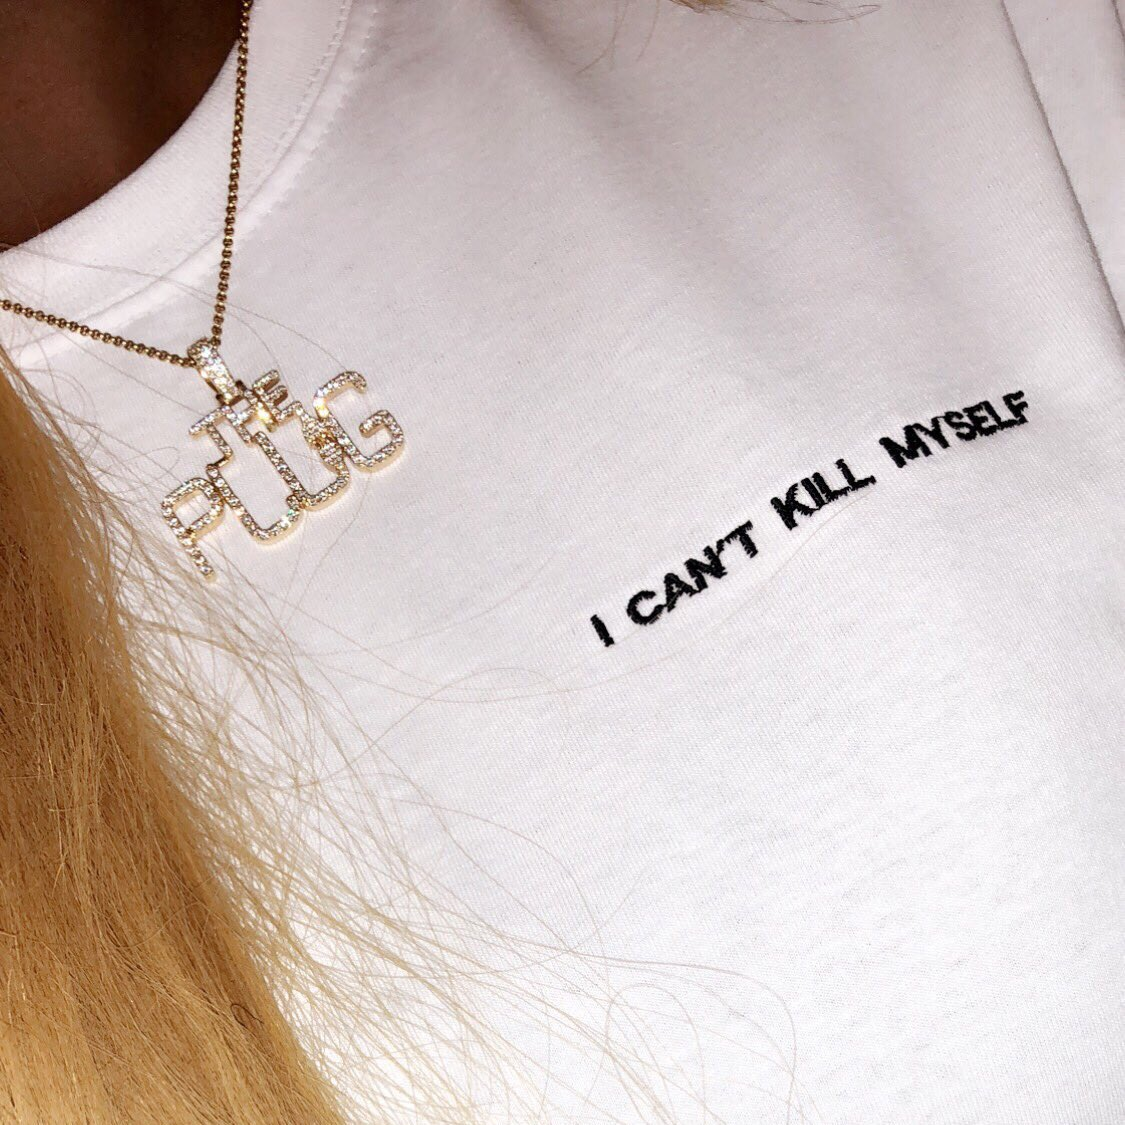 My T-Shirt reflects my mood right now... 💬 #ICantKillMyself